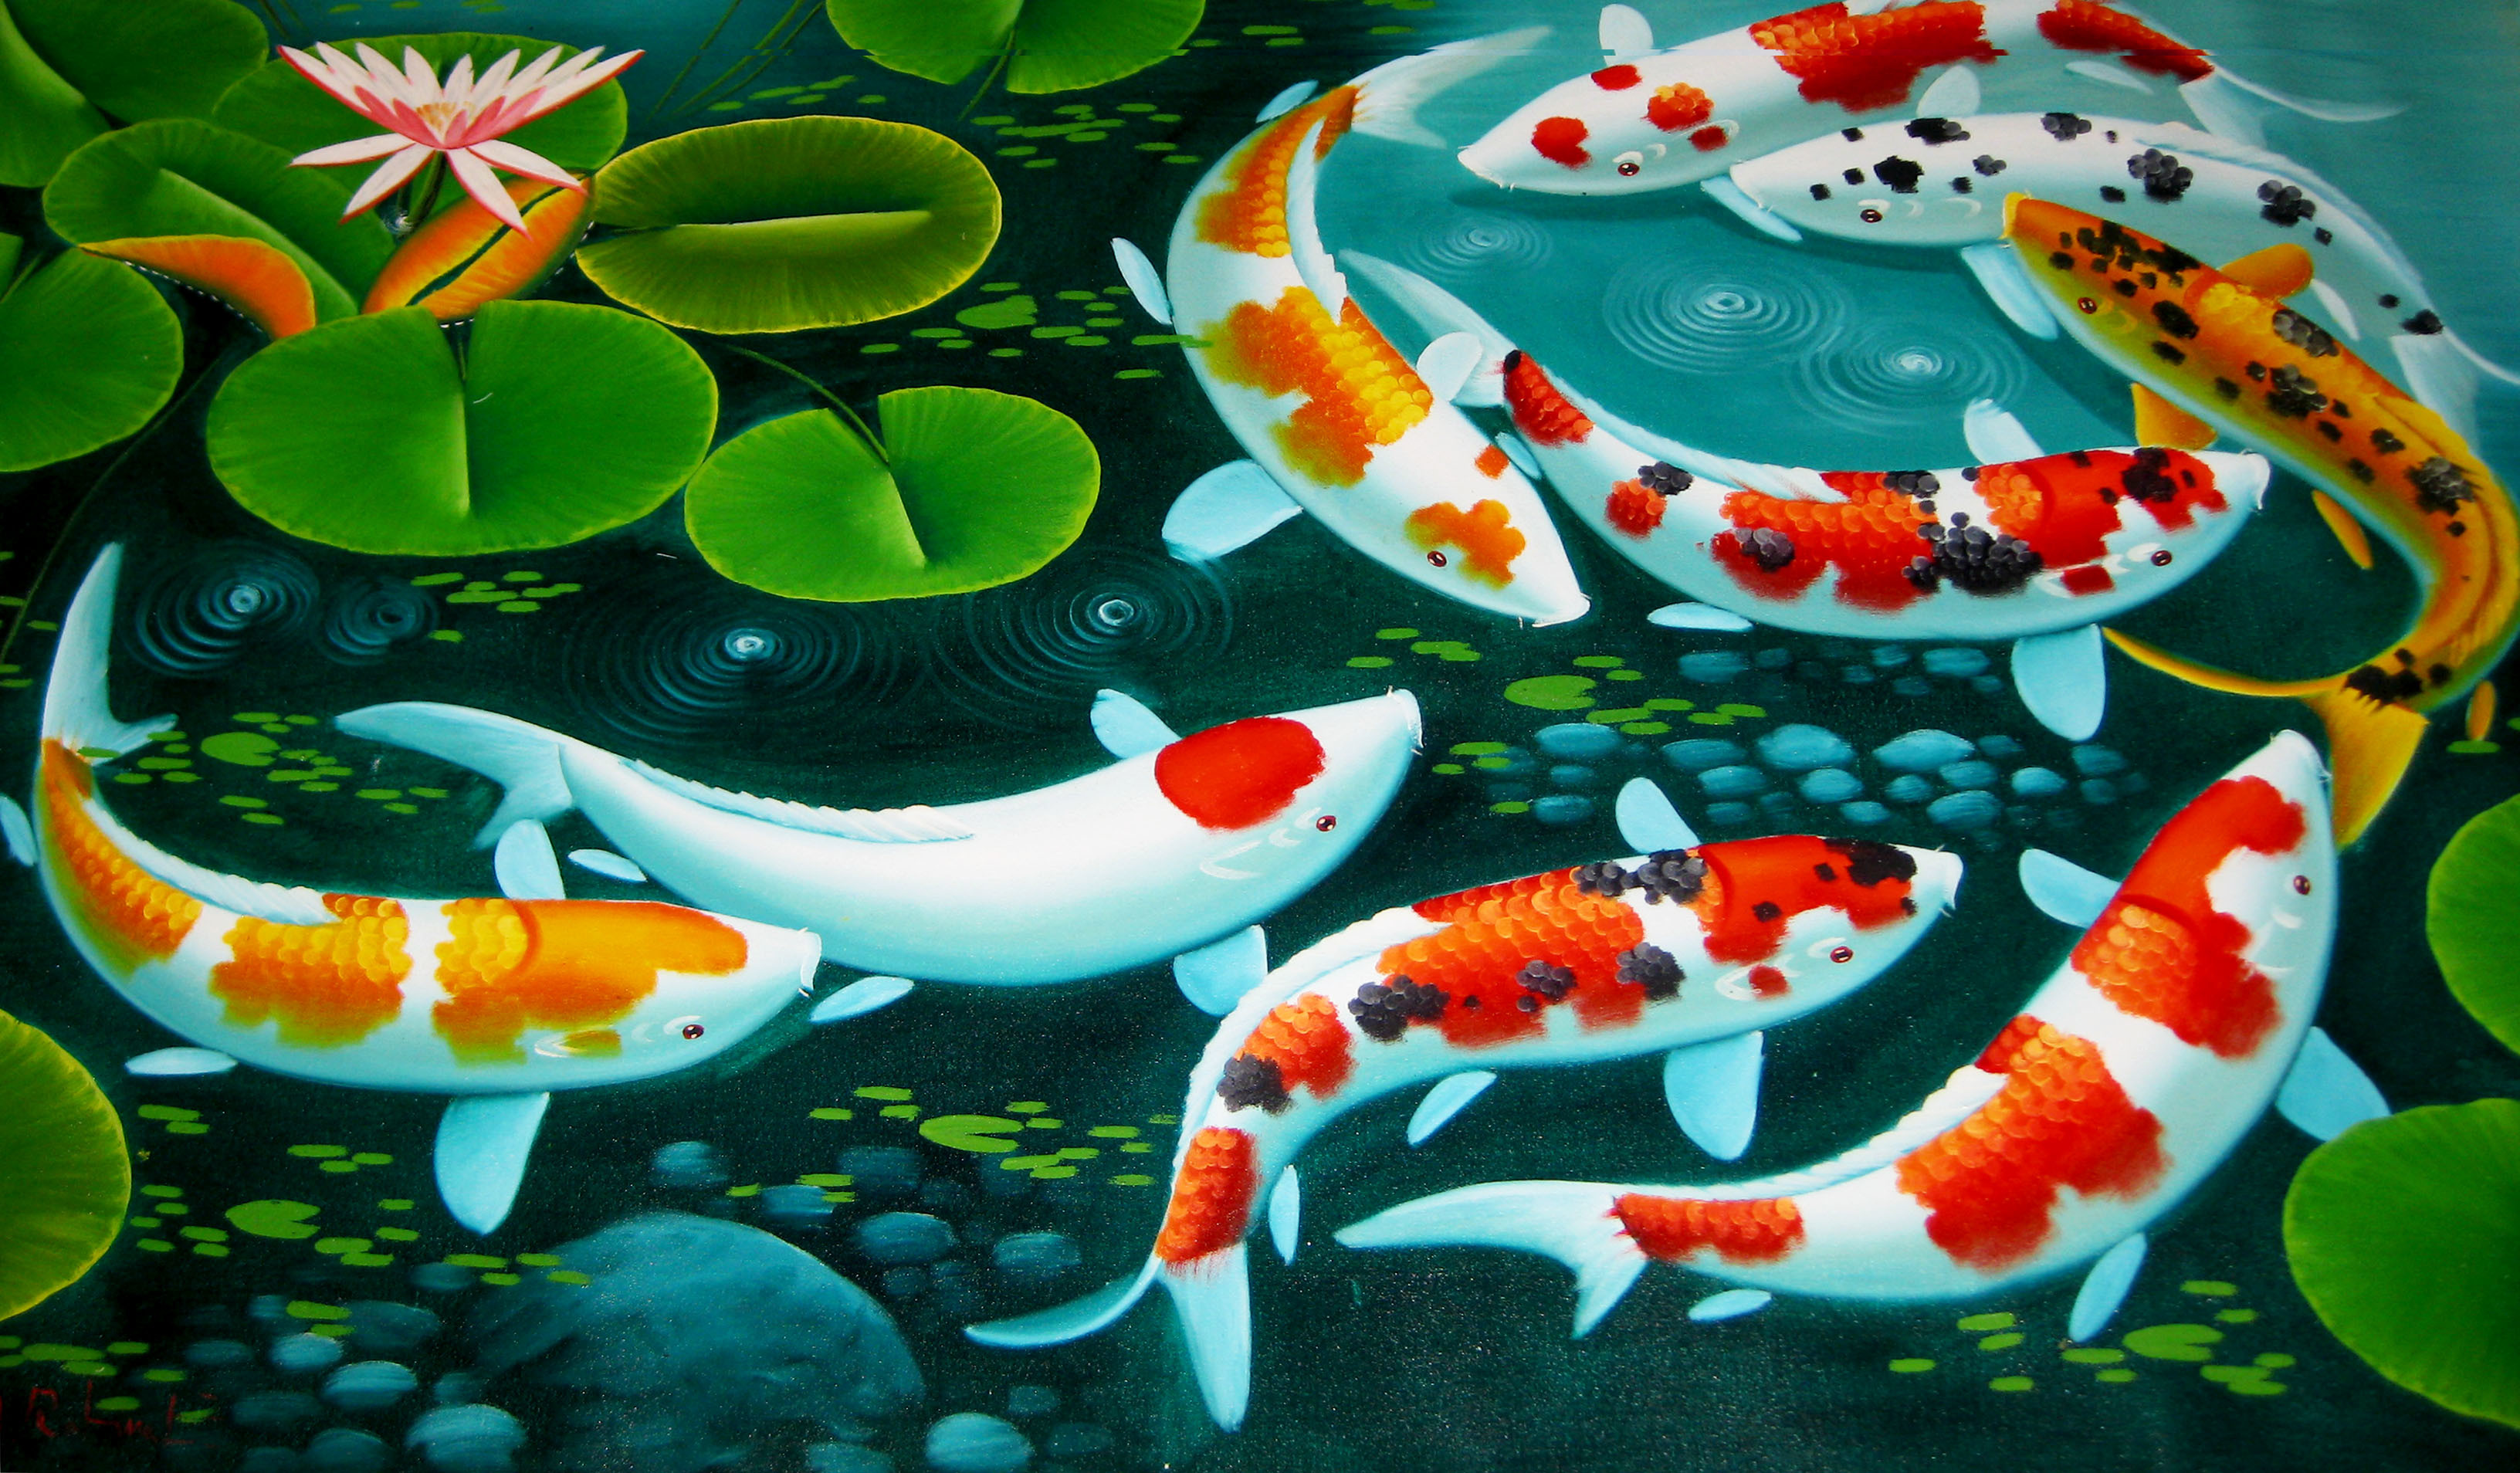 3264x1908 Koi Fish Wallpaper Koi Fish Desktop Background Pictures